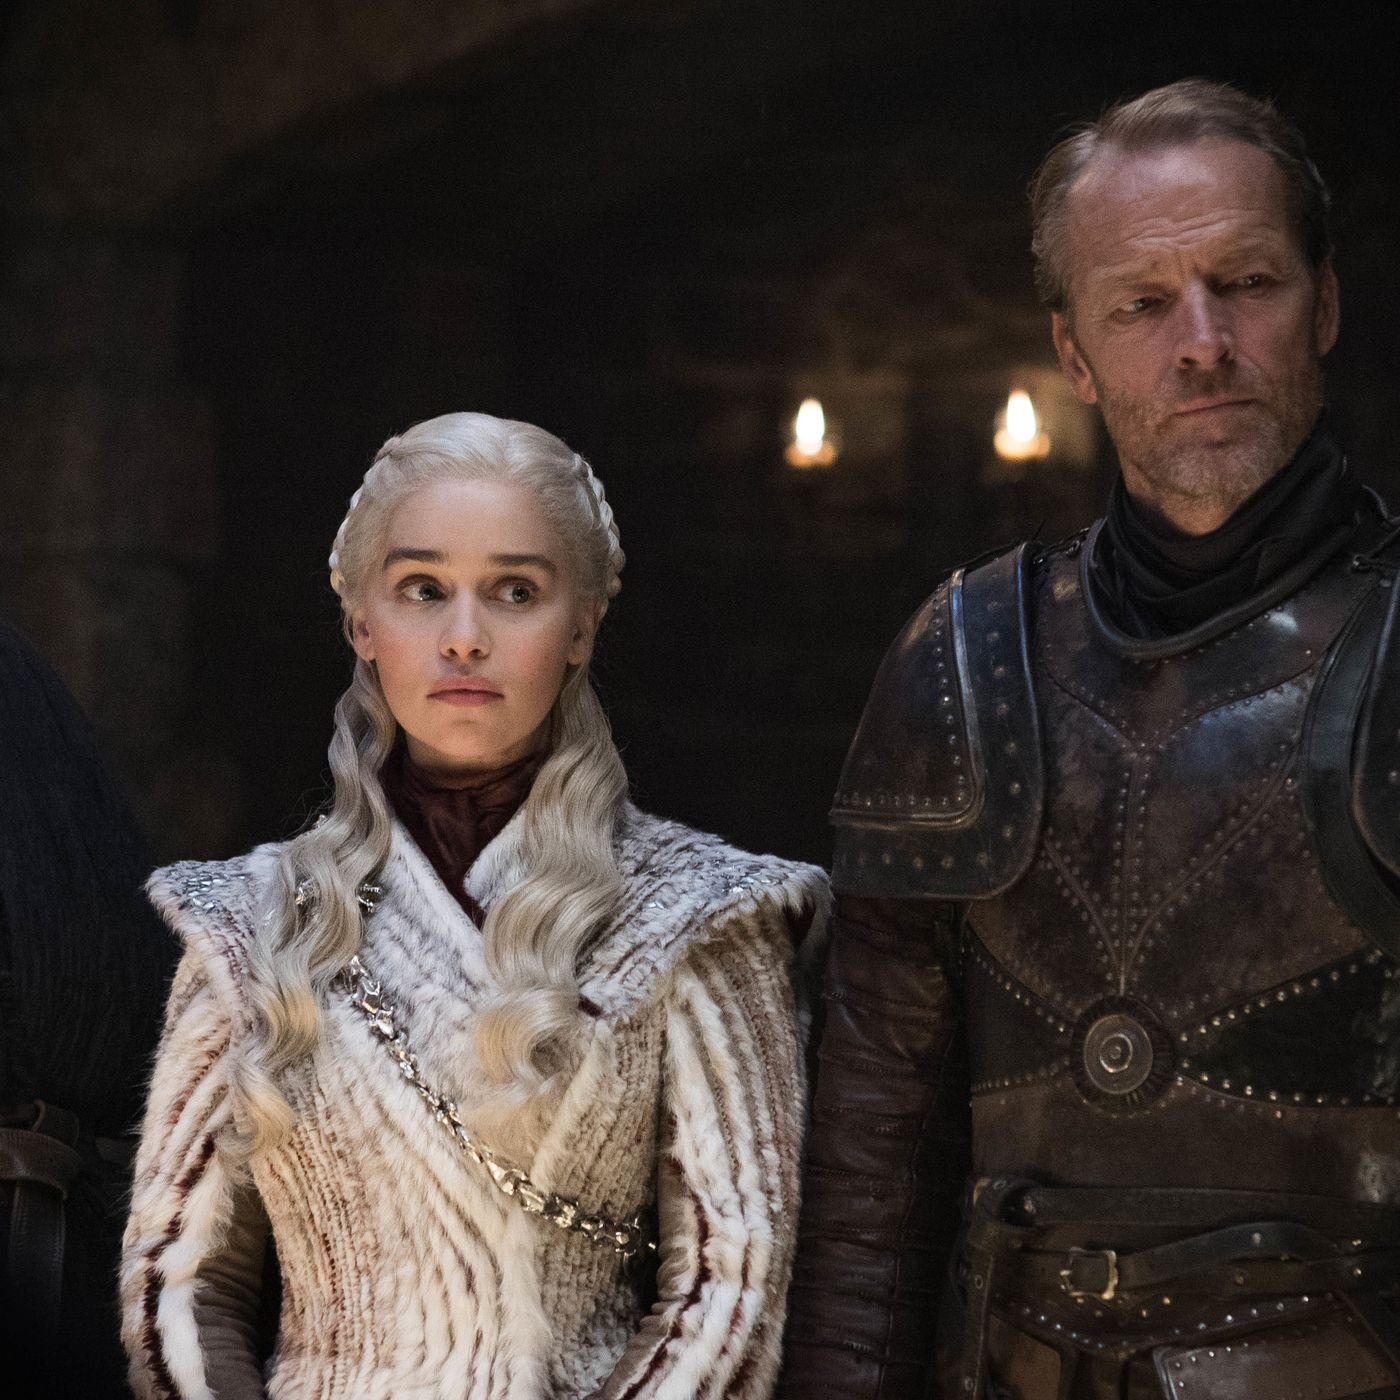 Game of Game of Thrones: season 8, episode 2, A Knight of the Seven